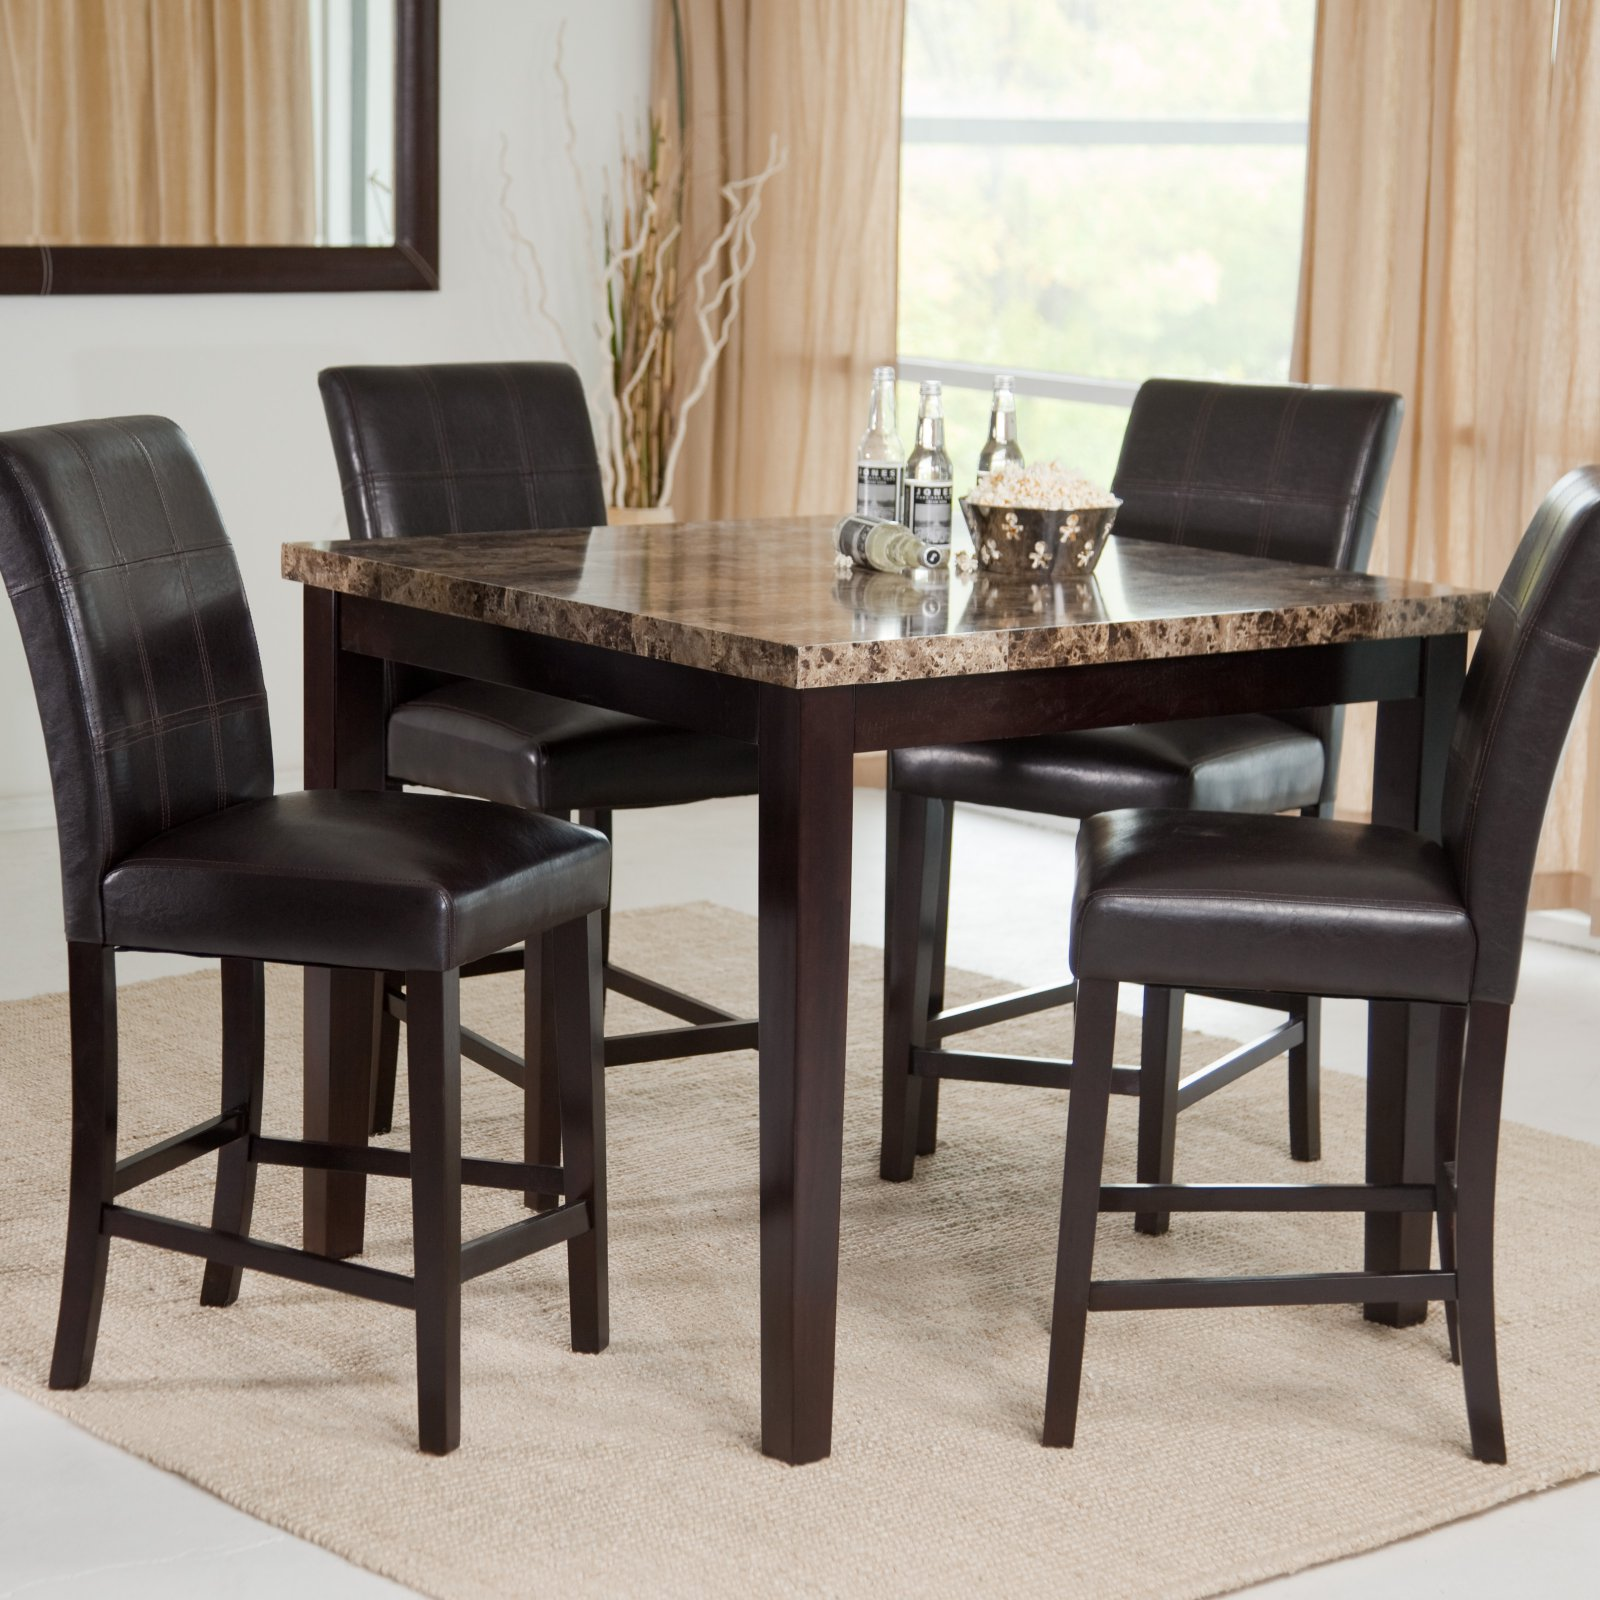 Palazzo 5-Piece Counter Height Dining Set